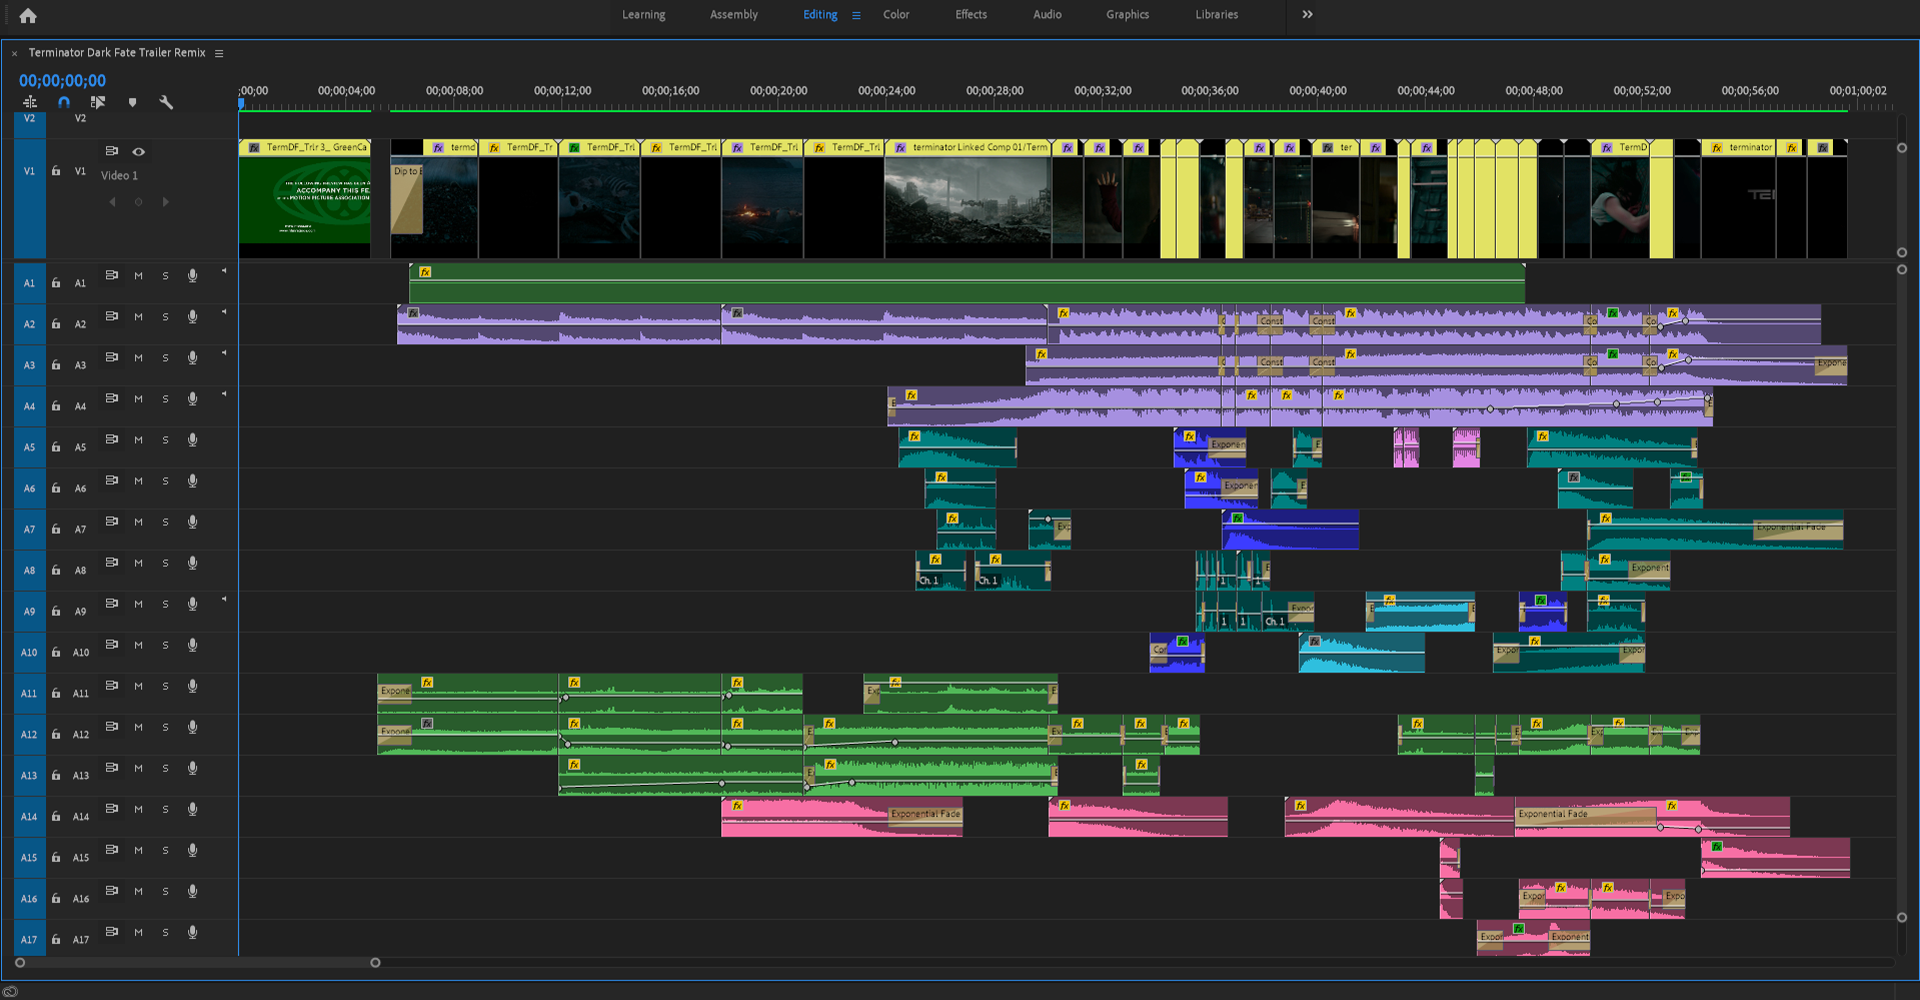 Timeline of my remixed trailer.